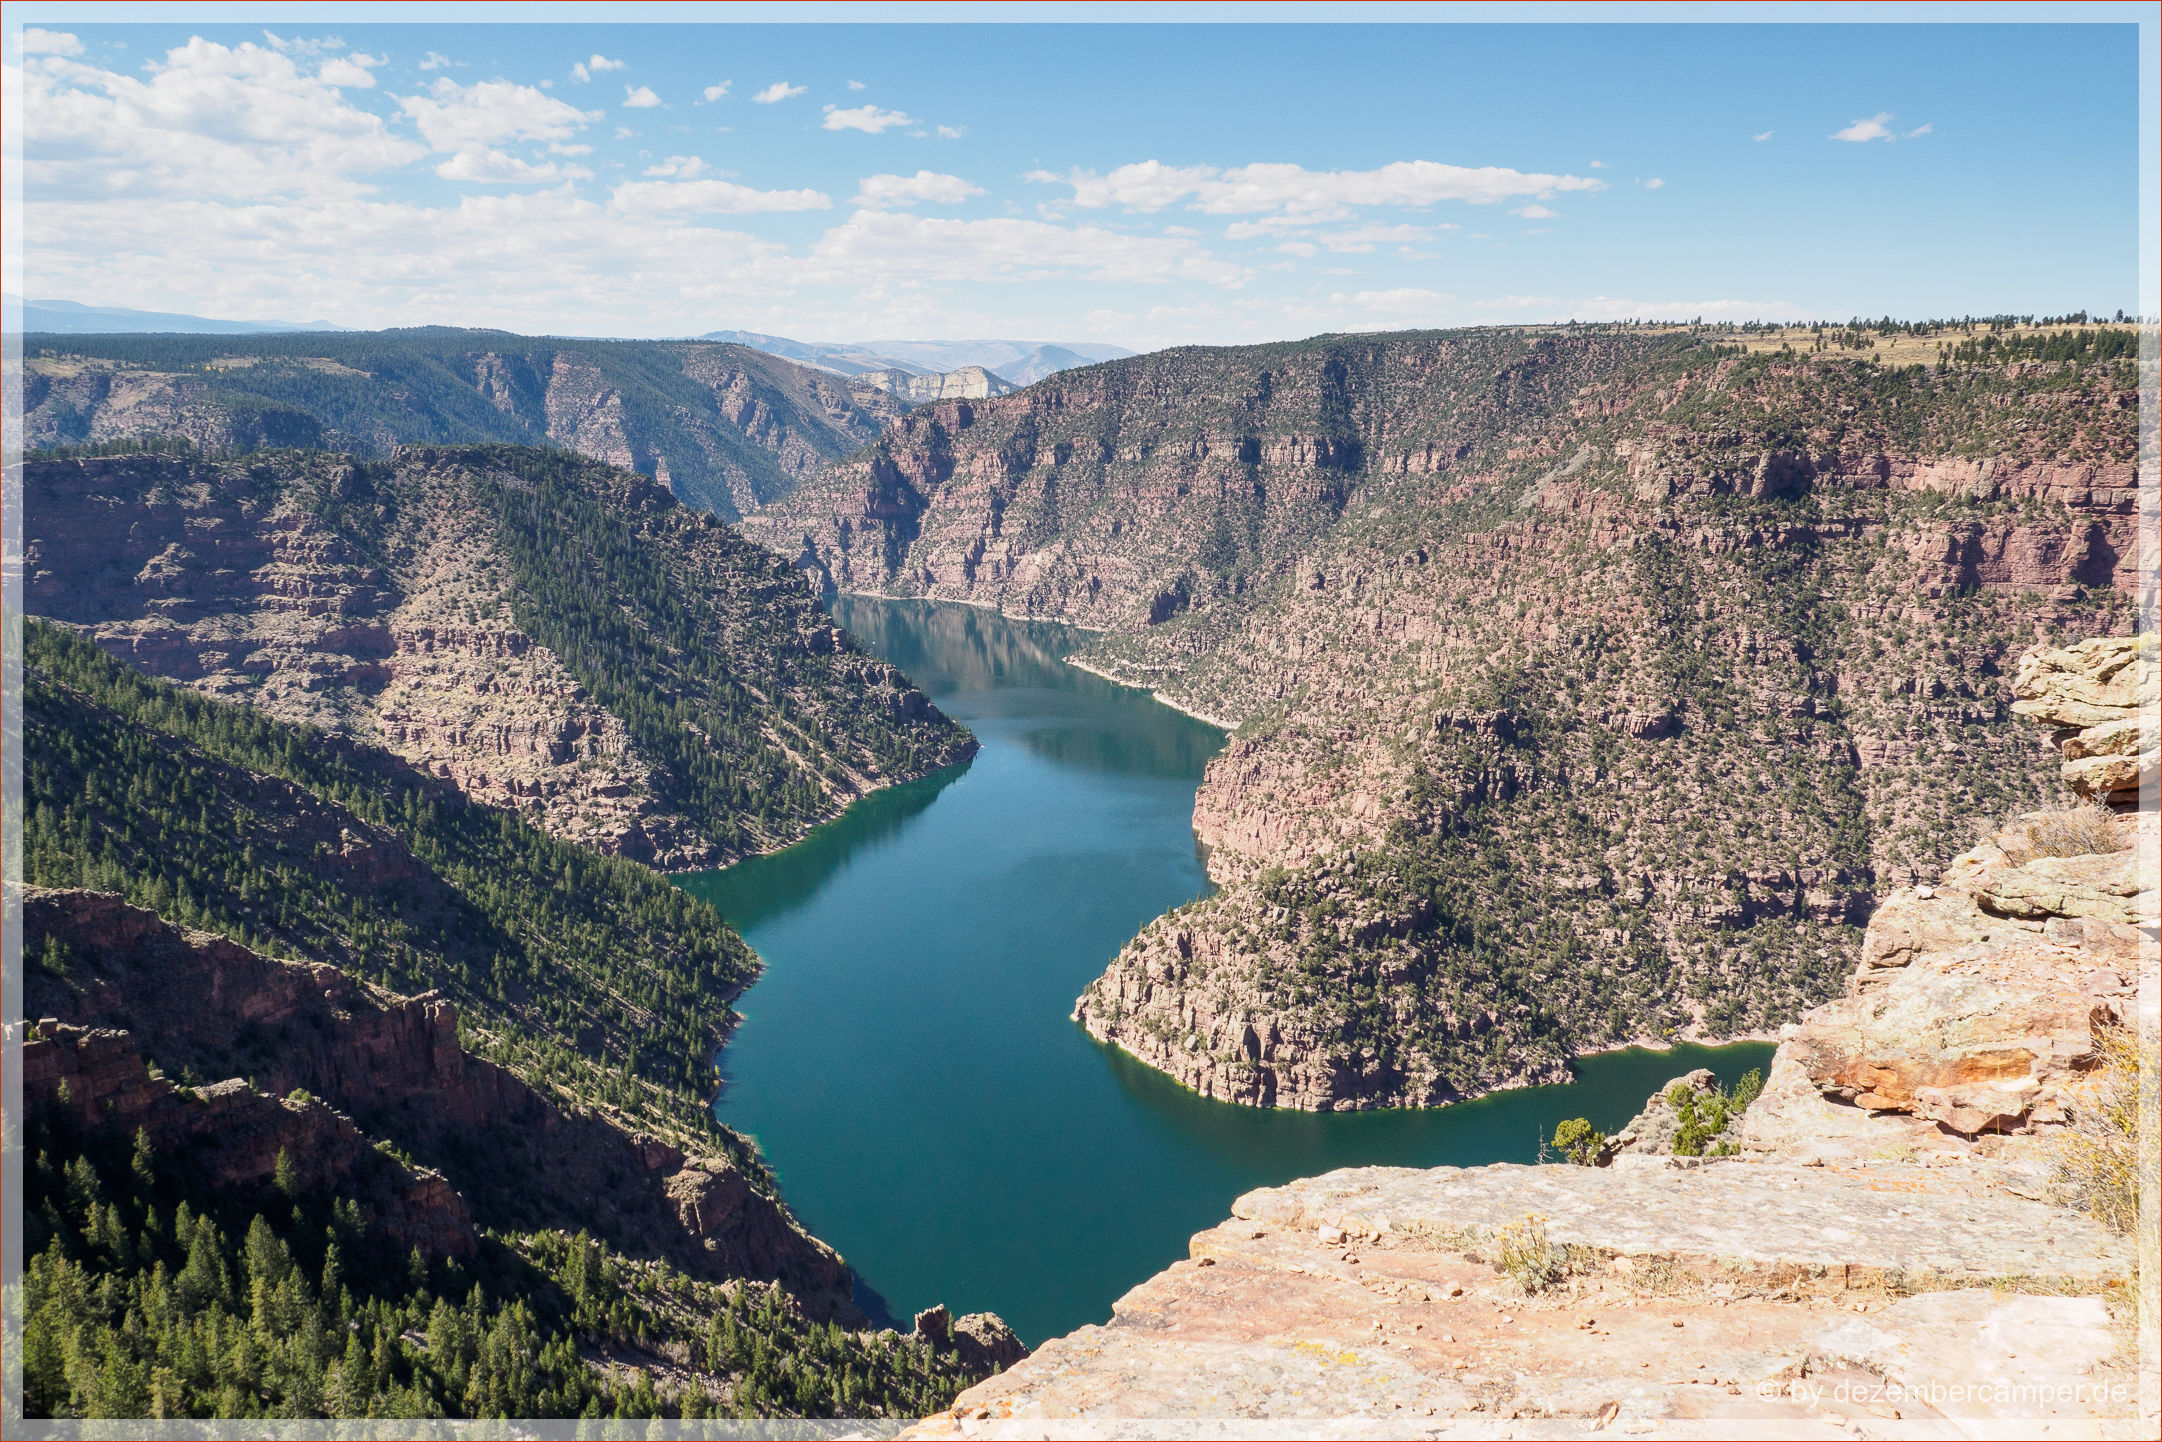 Flaming Gorge NRA